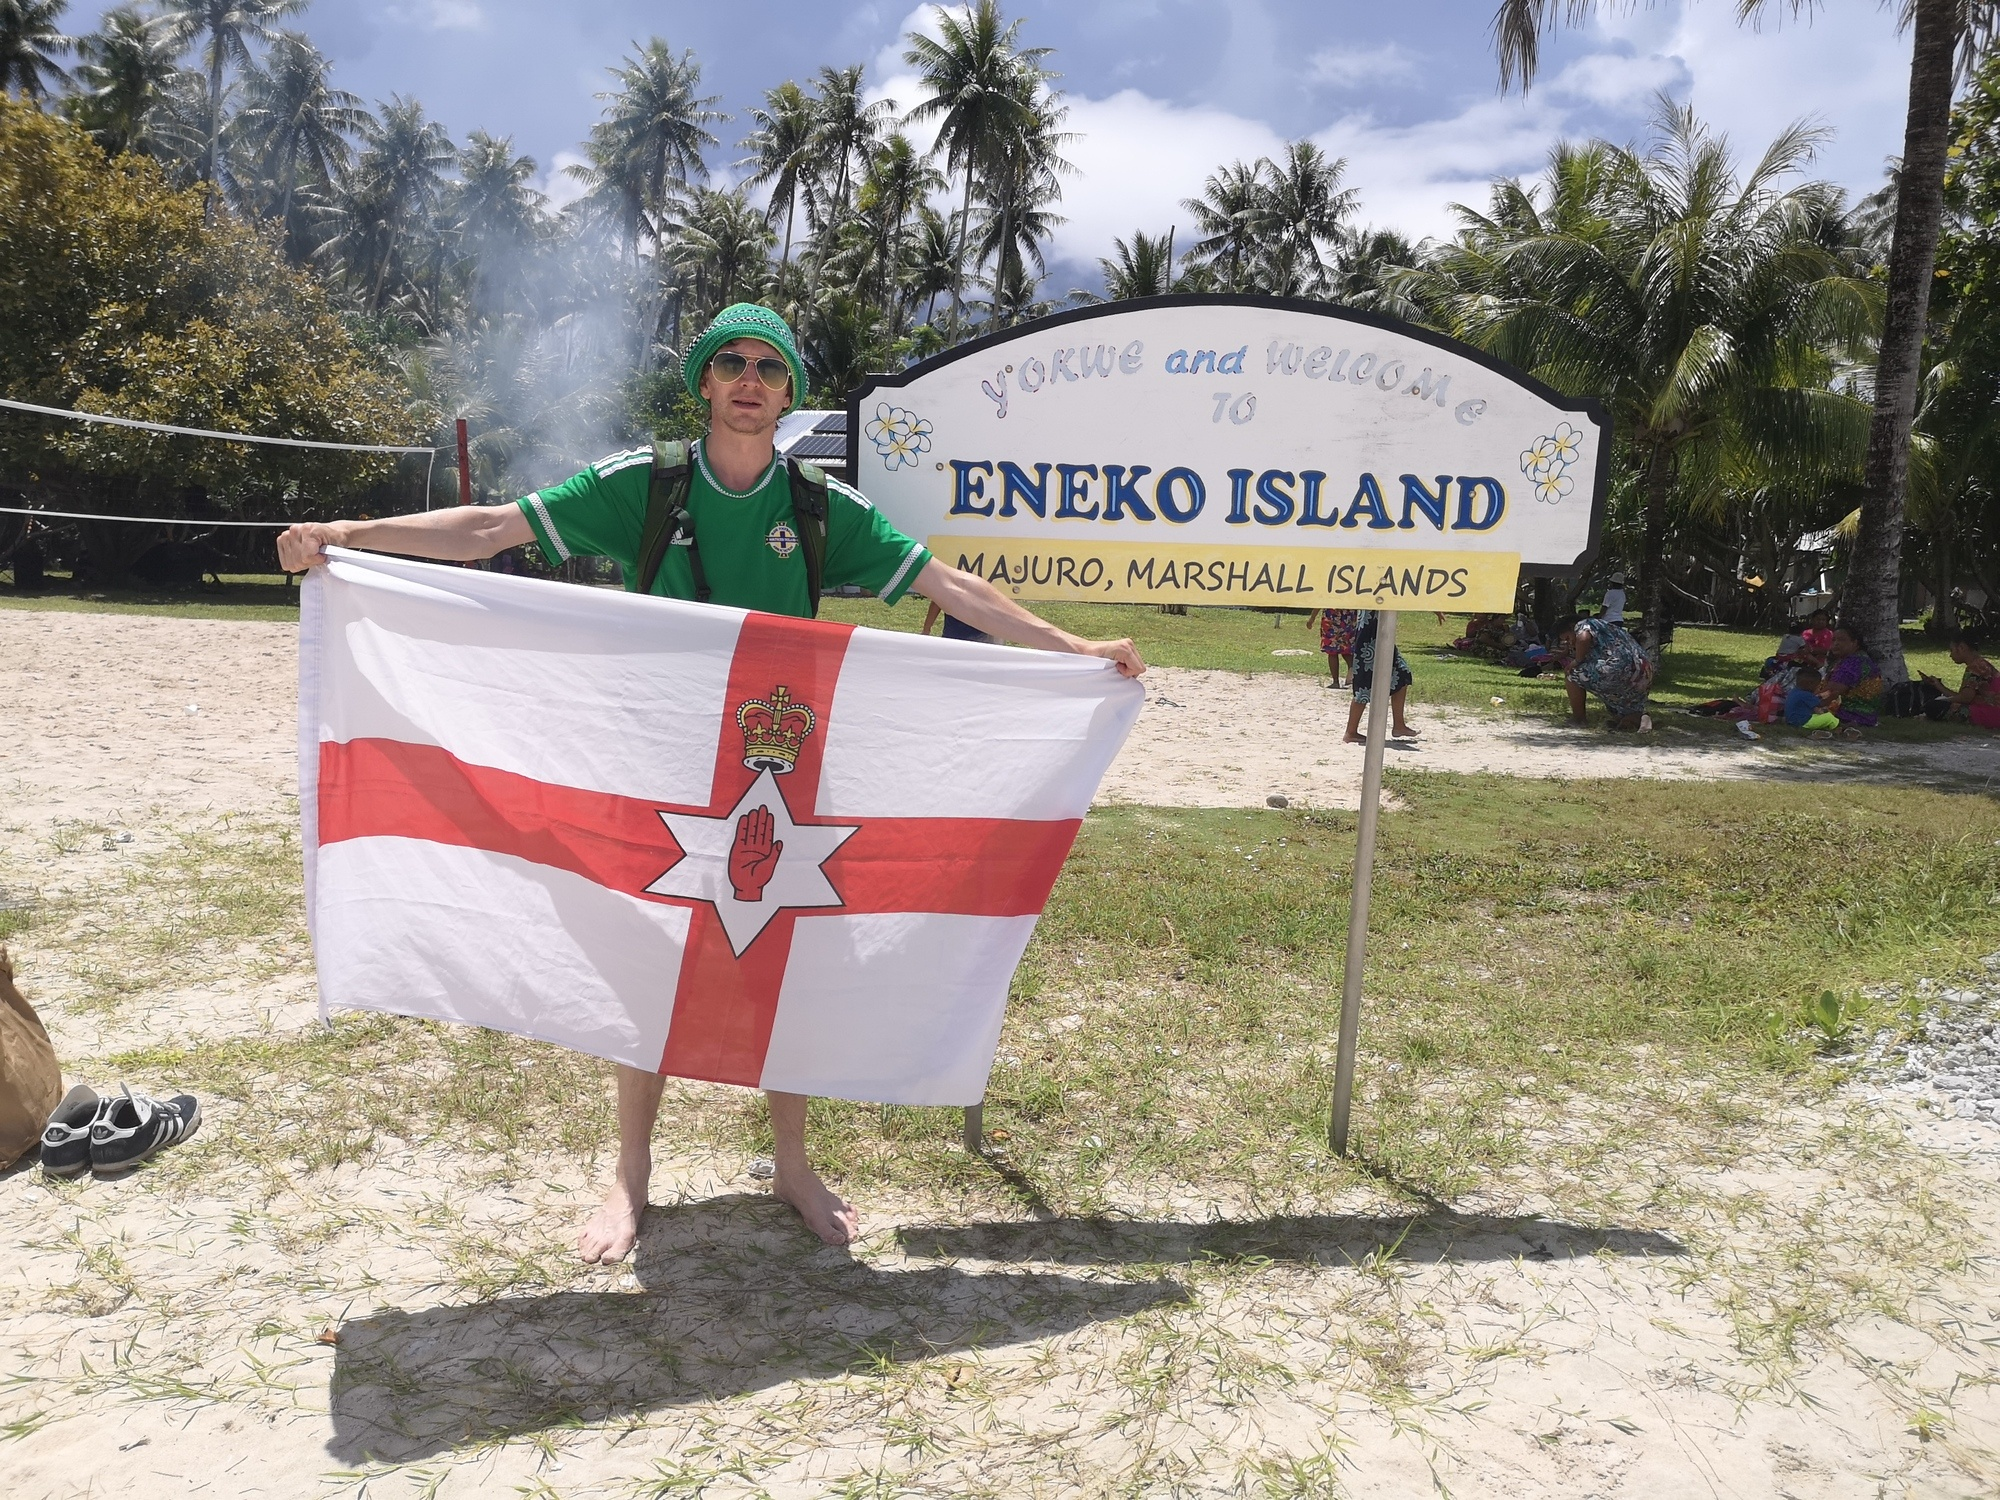 Backpacking in Marshall Islands: Touring Eneko Island